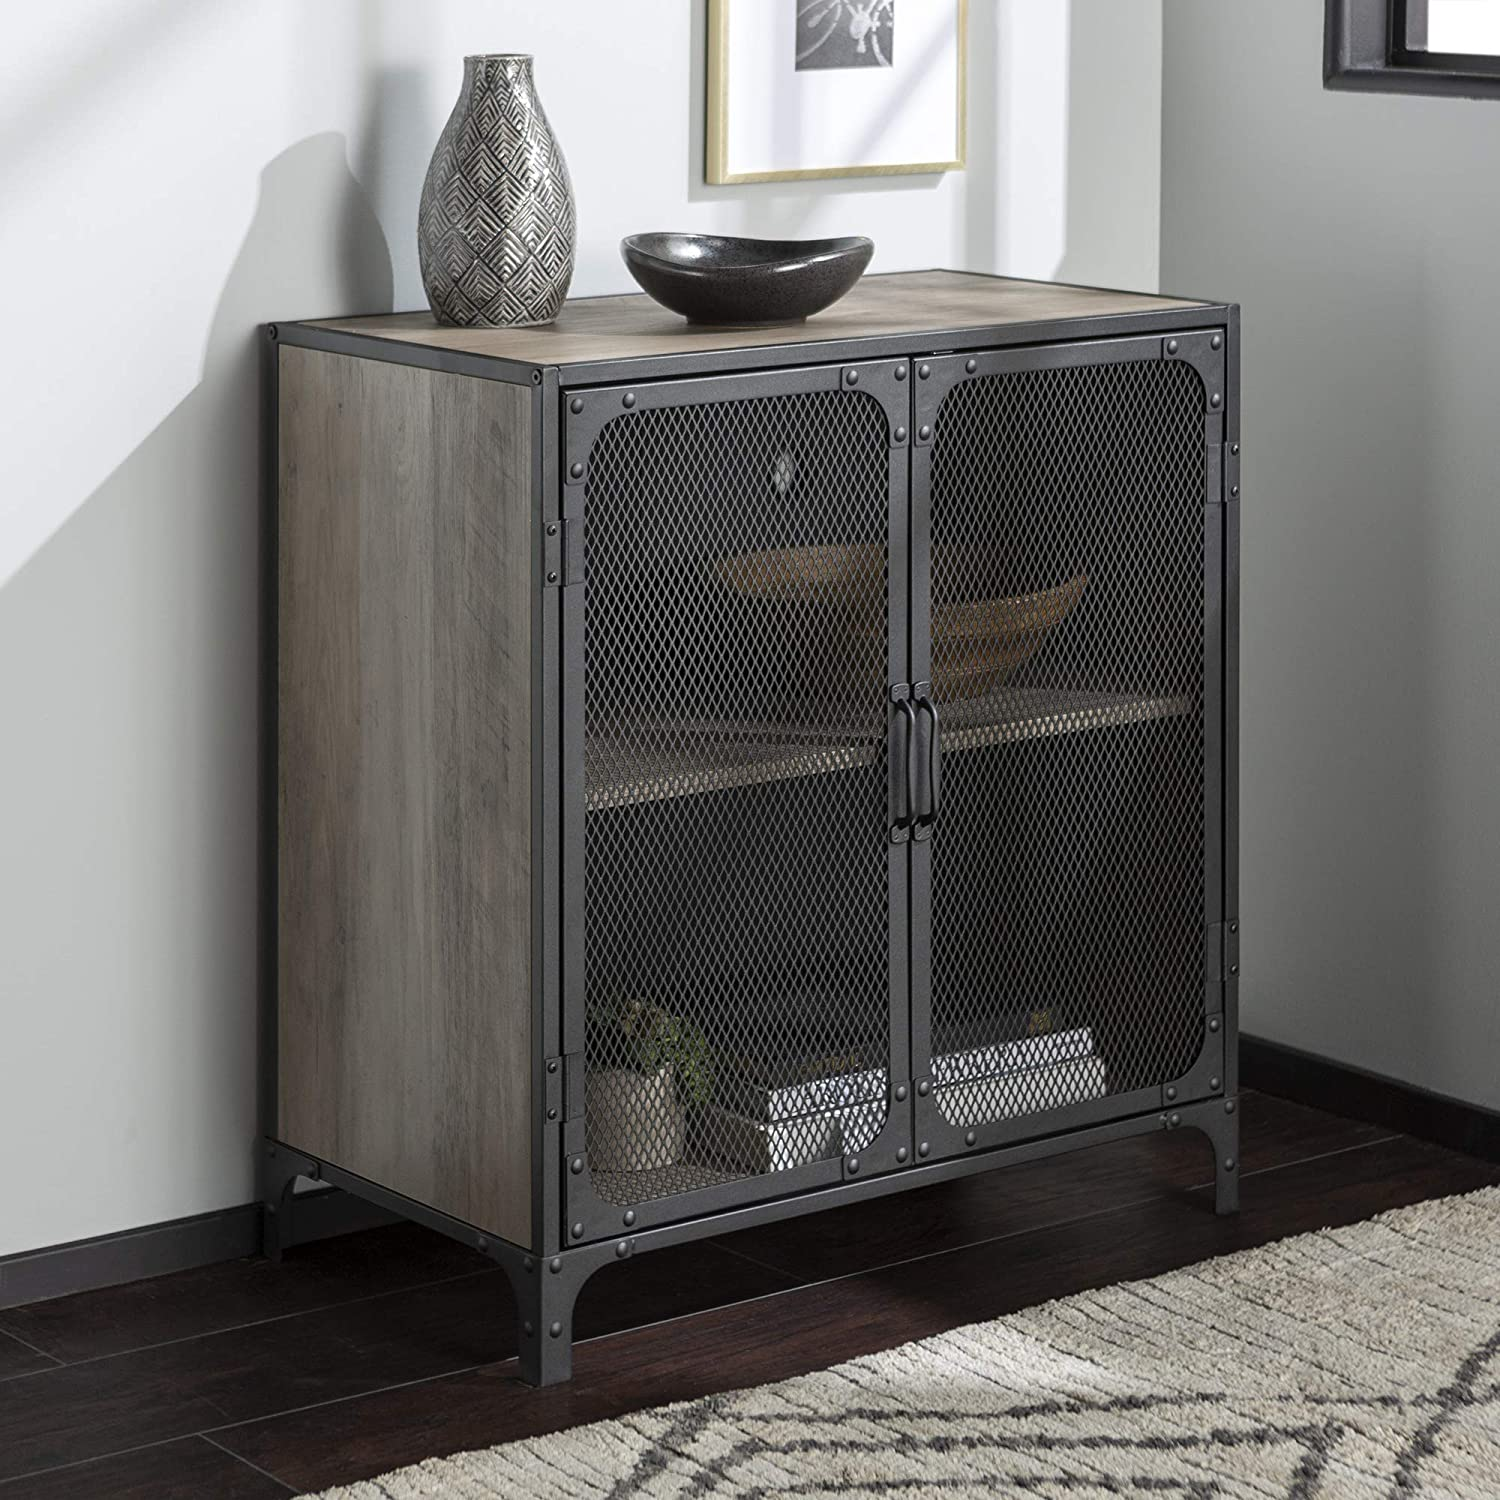 Walker Edison Industrial Metal Mesh Buffet Entryway Cabinet Doors Kitchen Dining Storage Living Room, 30 Inch, Grey Wash